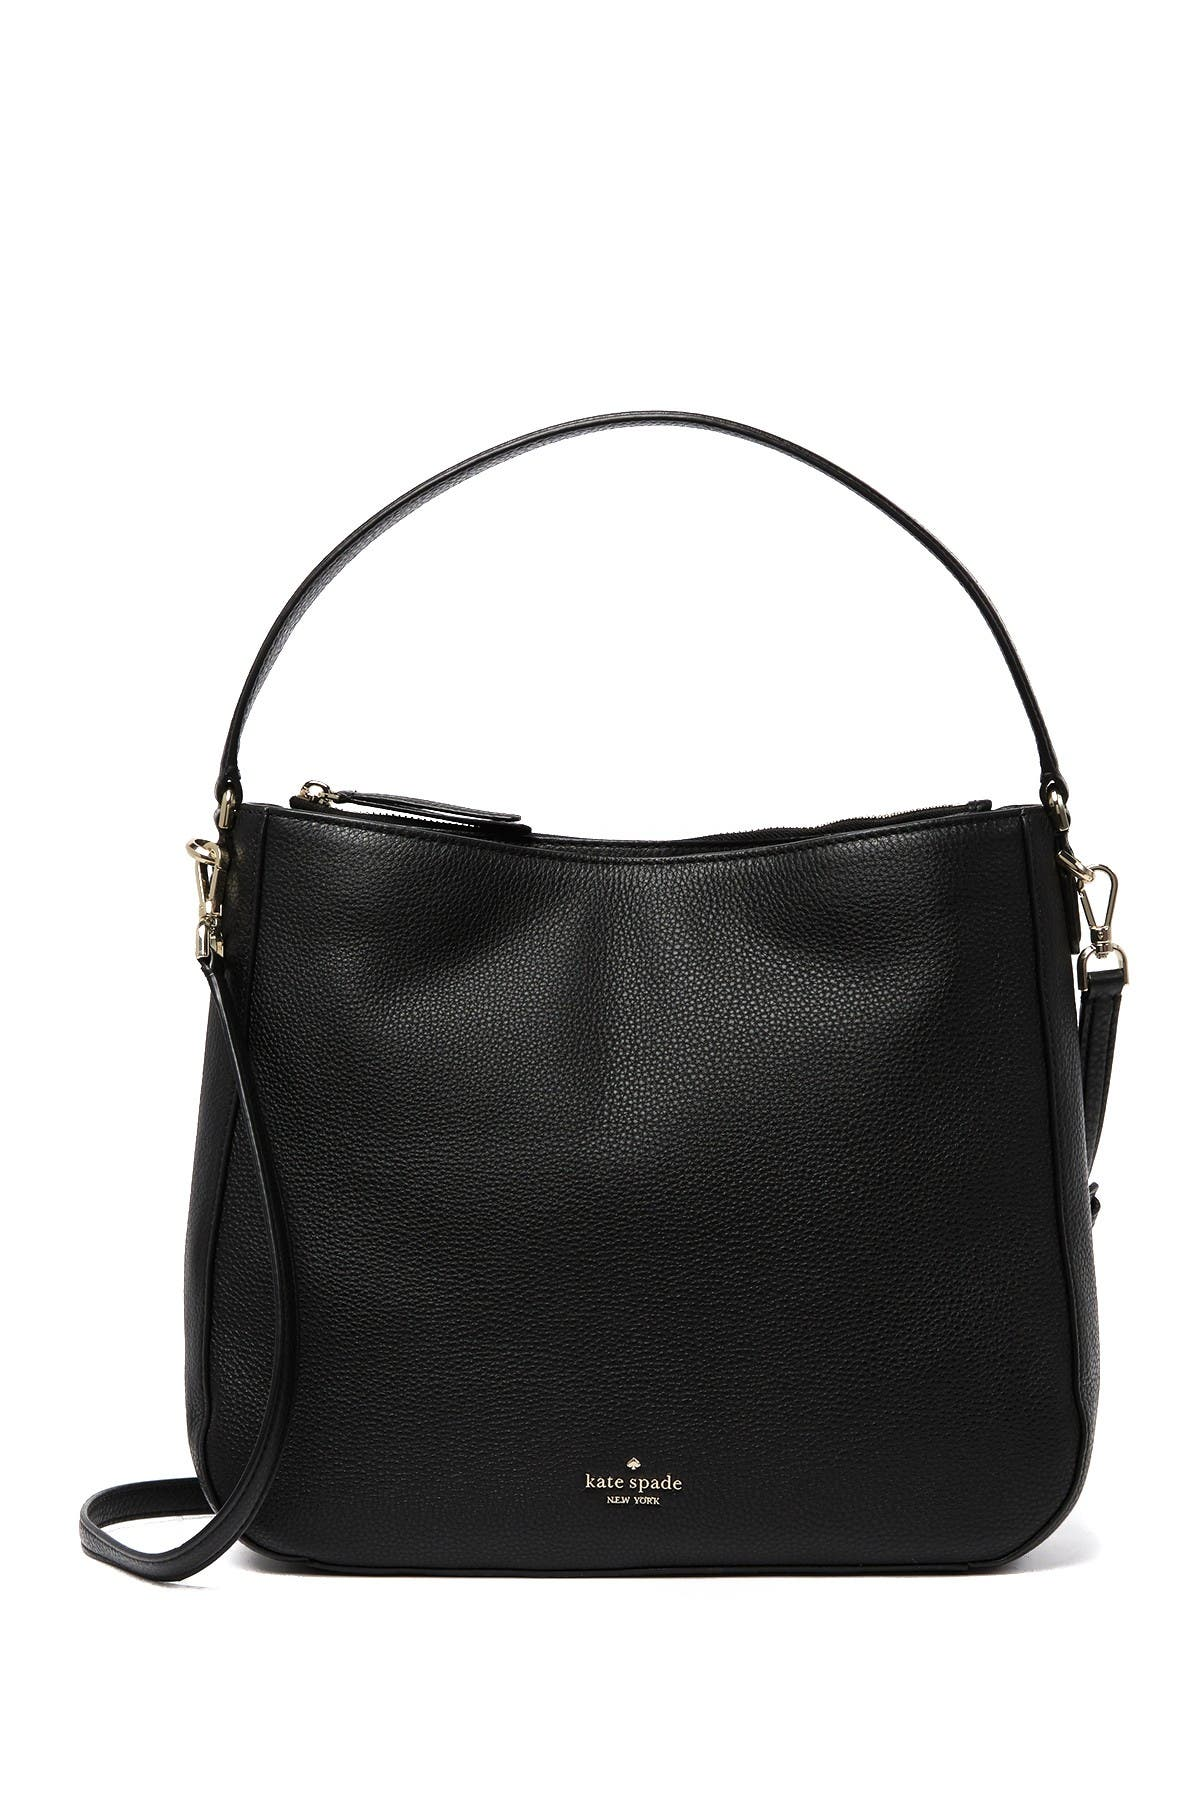 Image of kate spade new york jackson double compartment leather shoulder bag